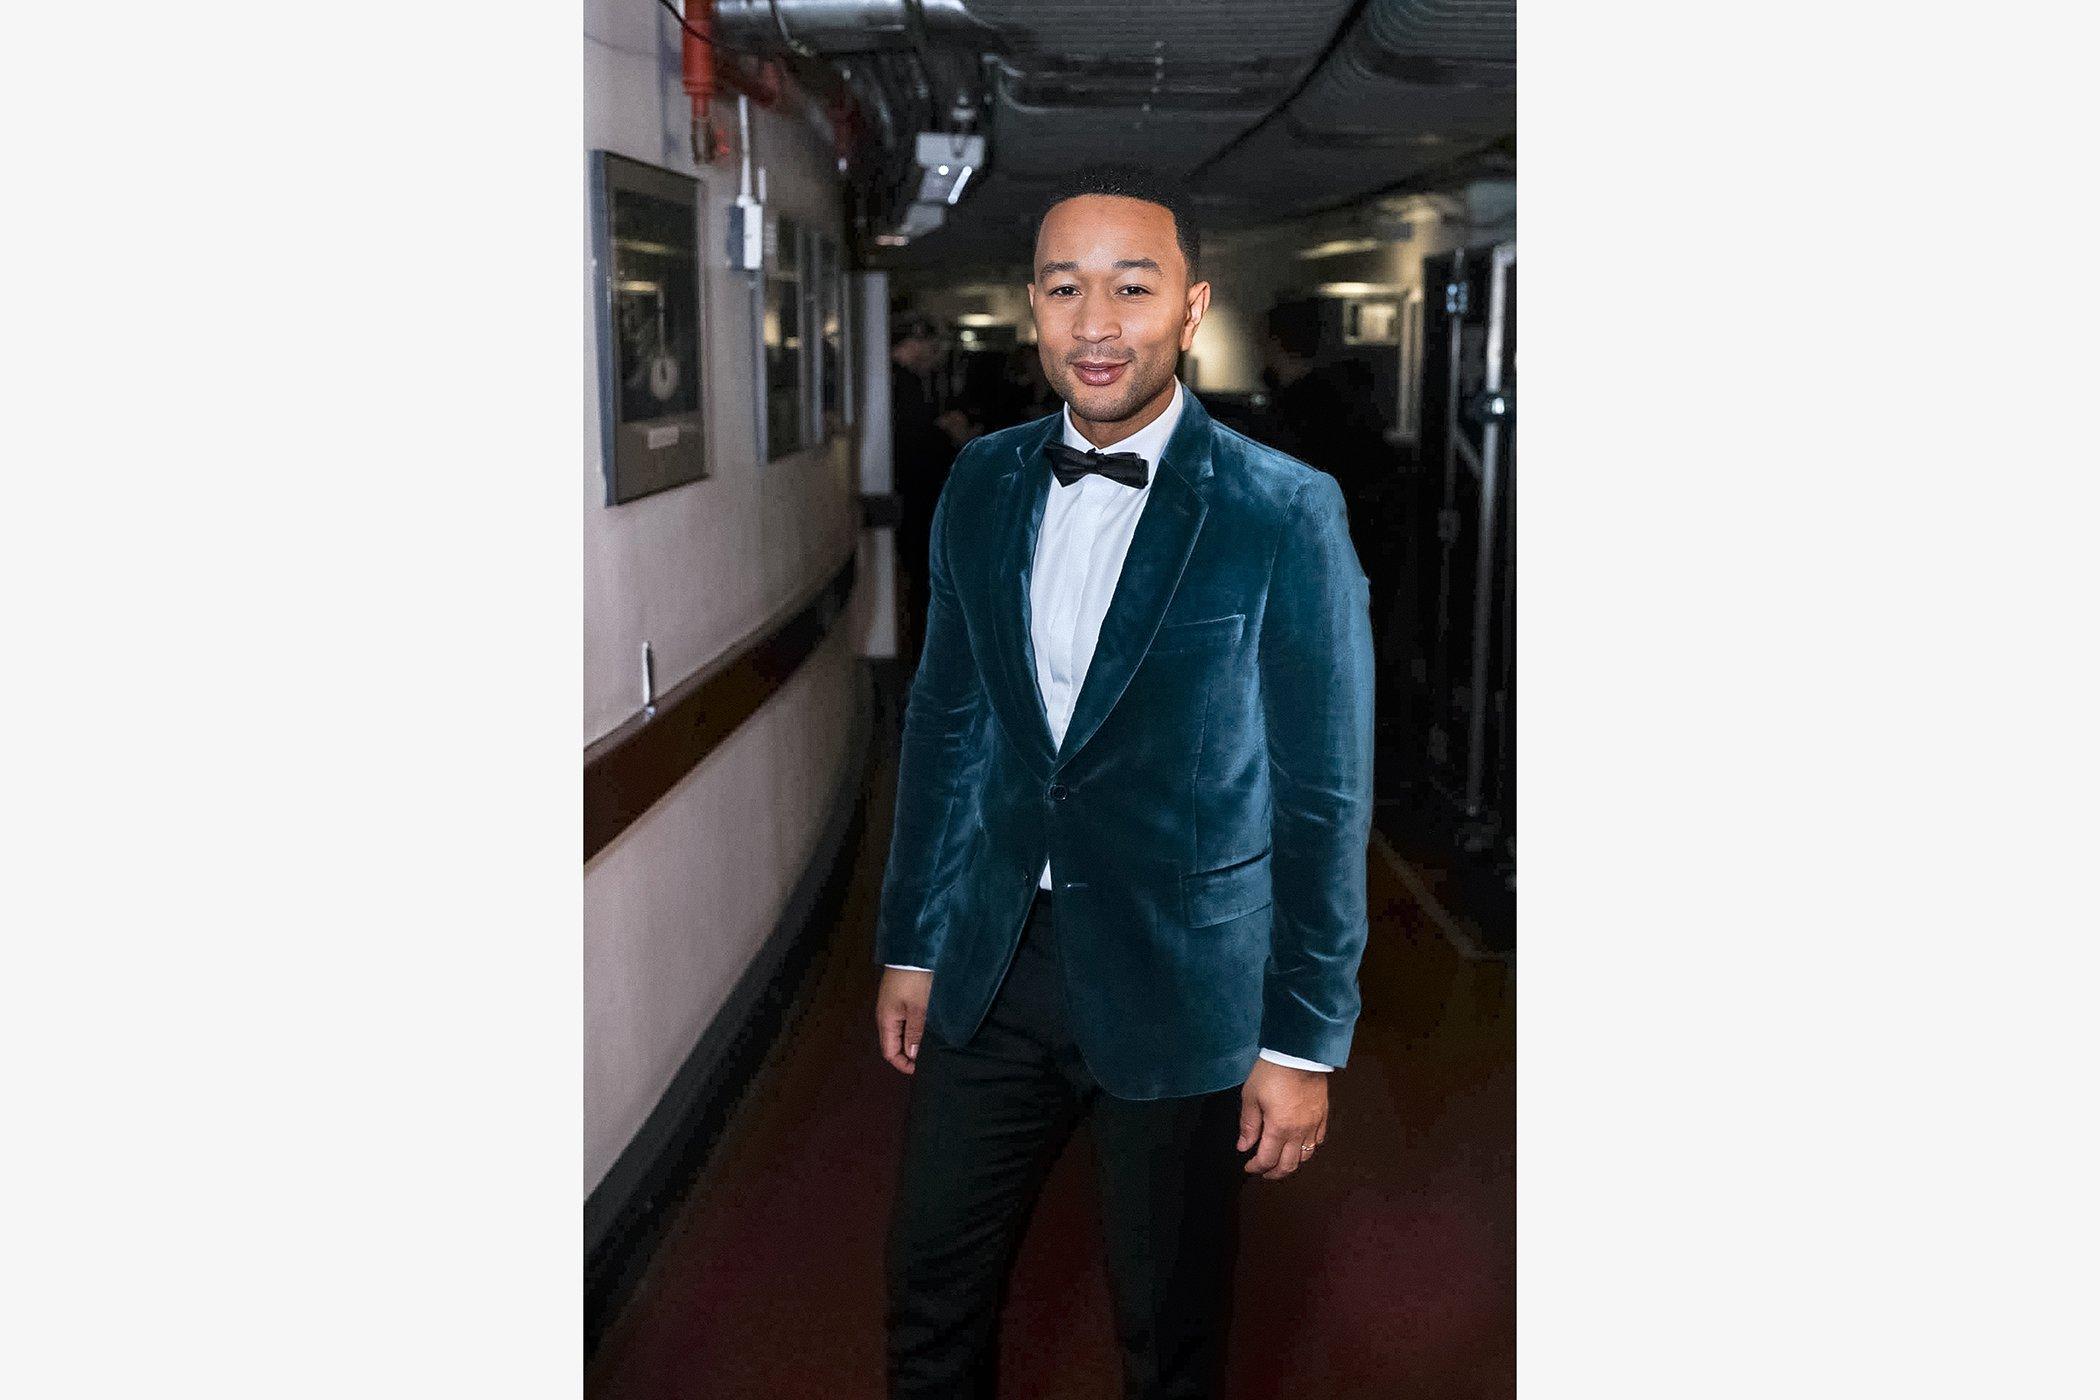 GC Prize_Backstage_JohnLegend_GreyHuttonForGlobalCitizen.jpg